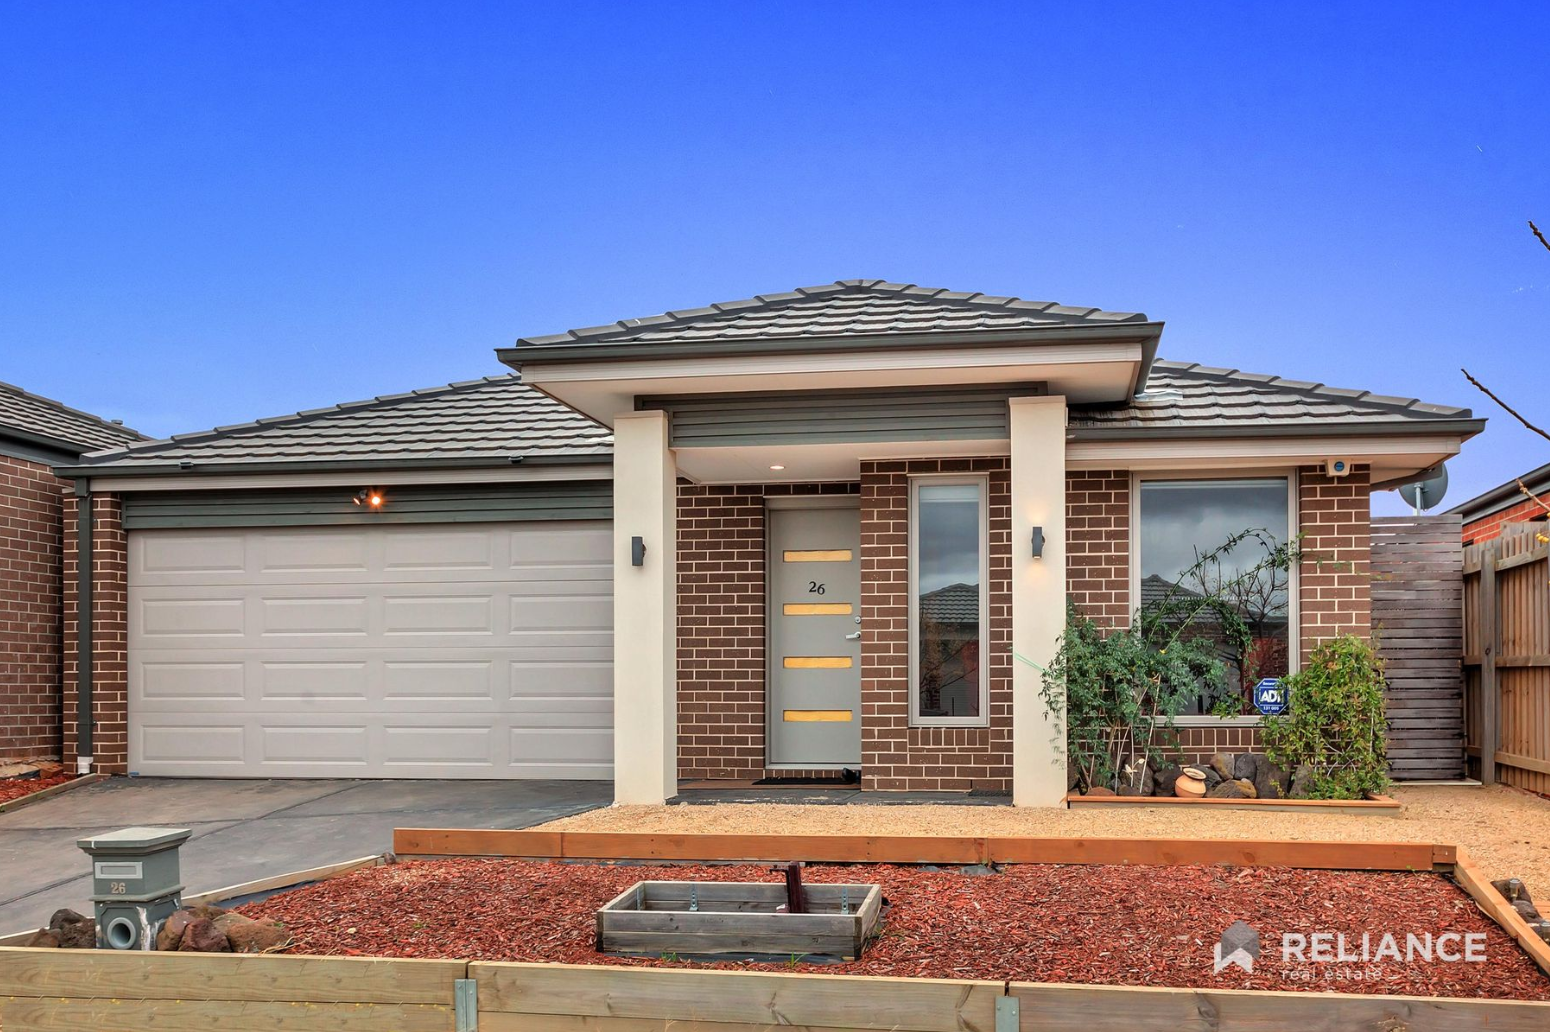 Lifestyle, Location & Affordability; 26 Chantelle Pde, Tarneit